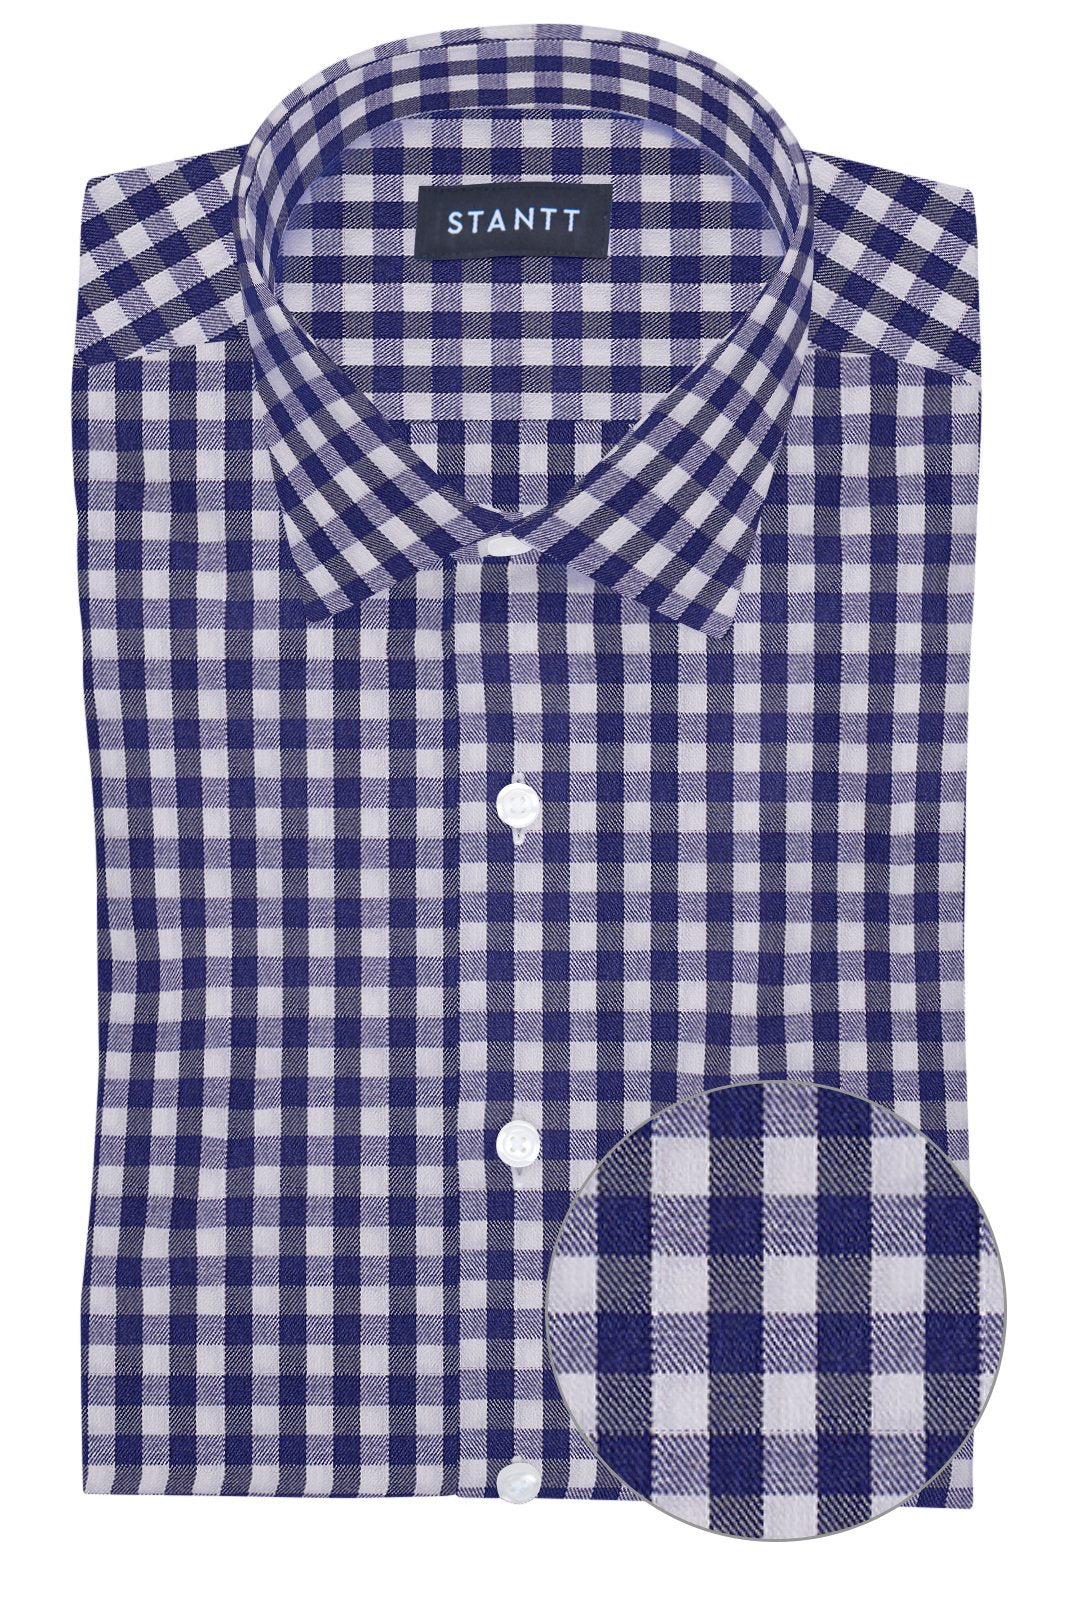 Performance Indigo Gingham: Modified-Spread Collar, French Cuff